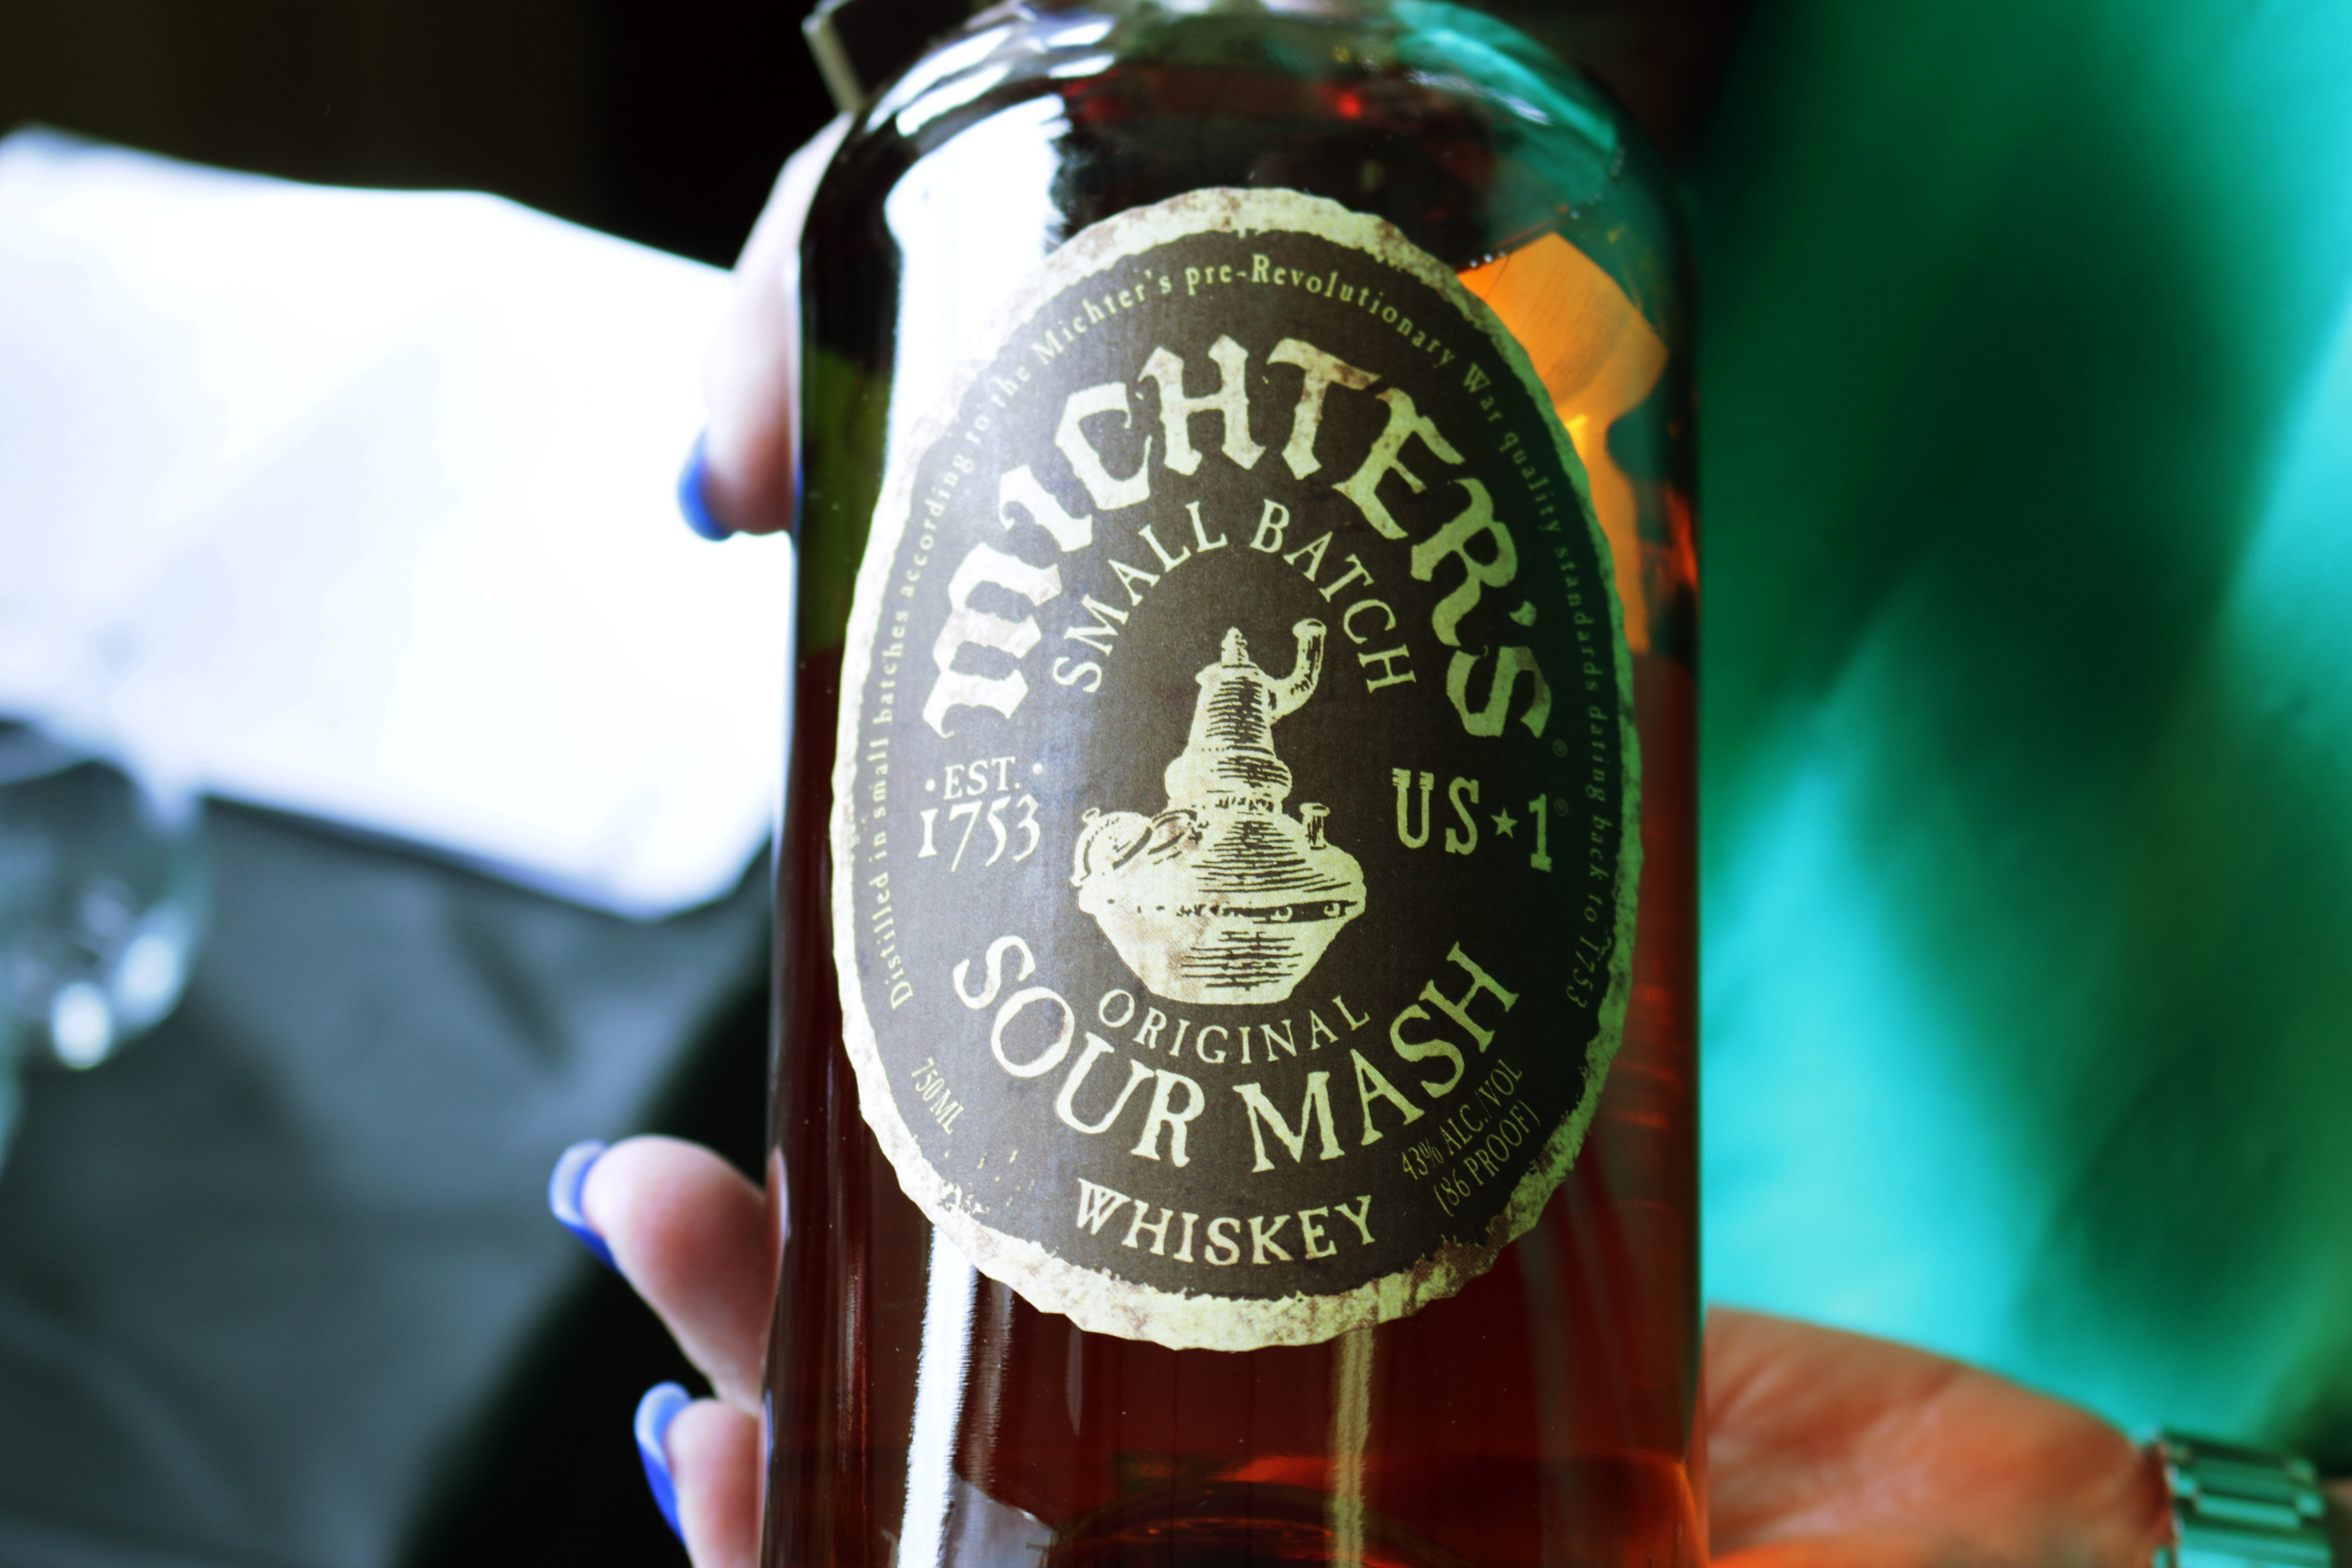 Michter's Sour Mash